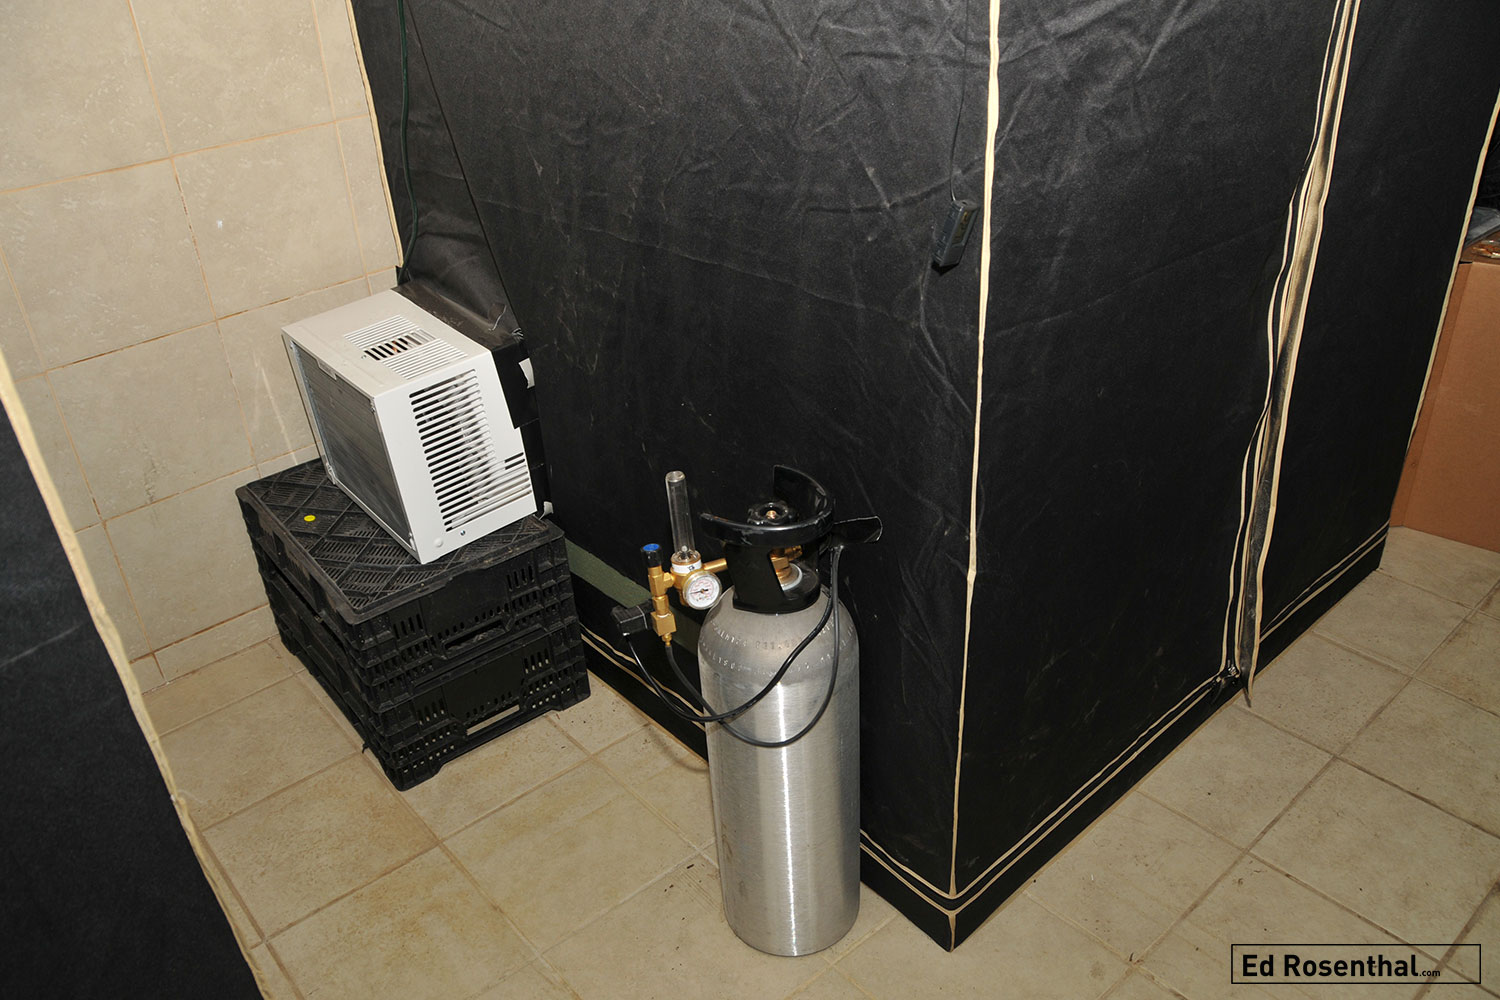 Outside of the grow tent, the air conditioner and CO2 tank are installed.